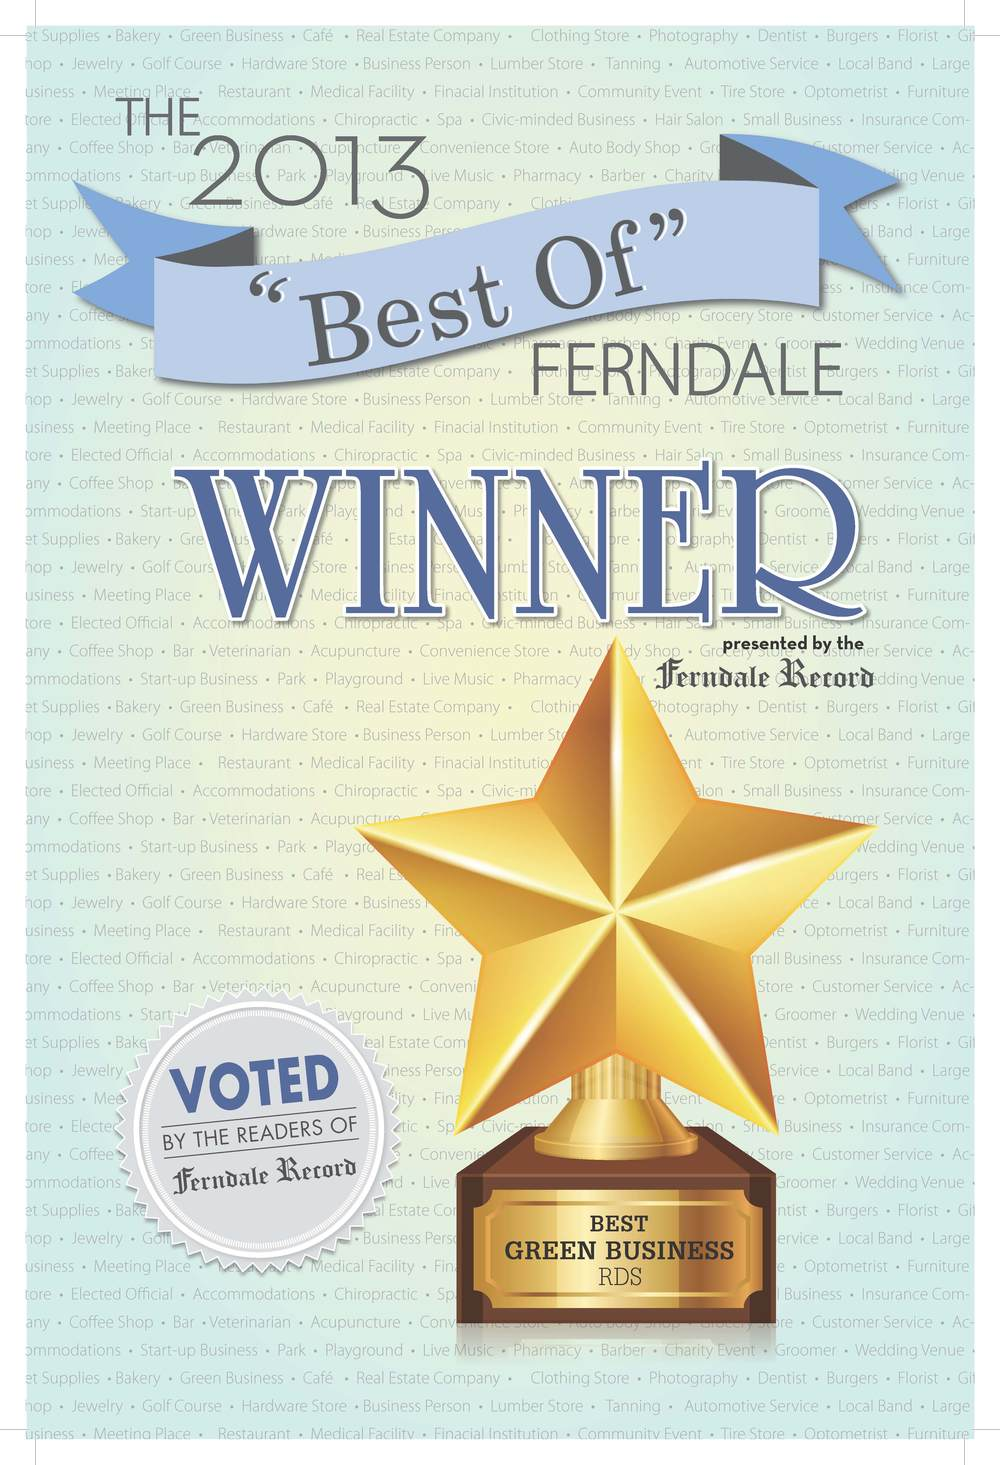 "Voted Ferndale's ""Best Green Business"" of 2013 by the readers of Ferndale Record."